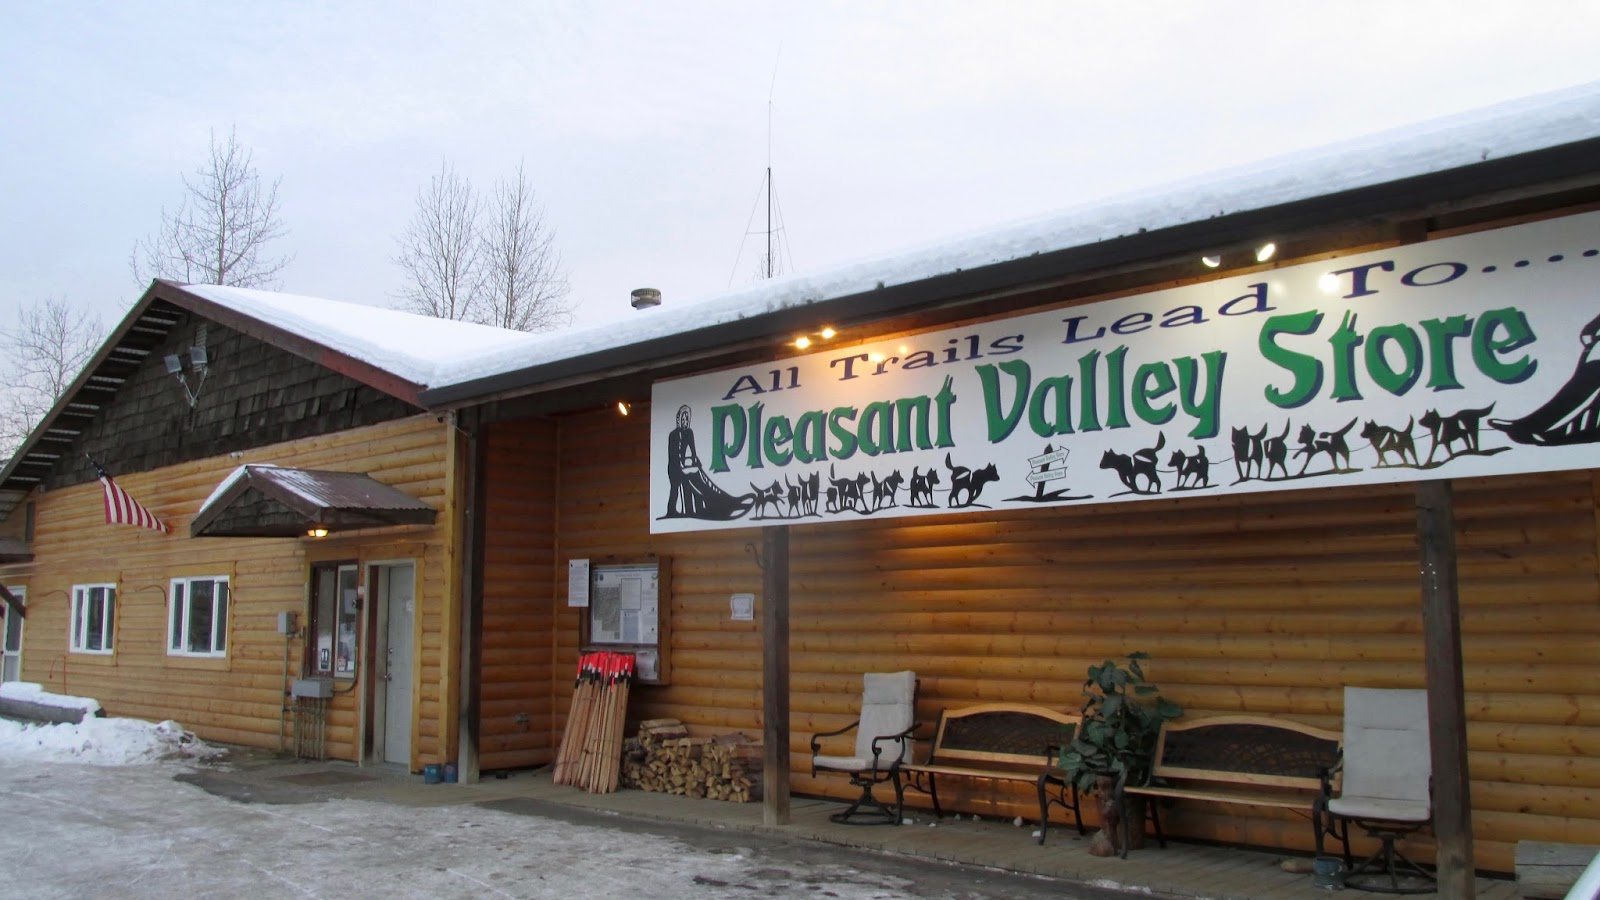 You Can Pick Up A Quart Of Oil, Toilet Paper, A Gallon Of Milk, The  Newspaper Or Even A Bottle Of Wine. Pleasant Valley Store Holds Our Little  Community ...